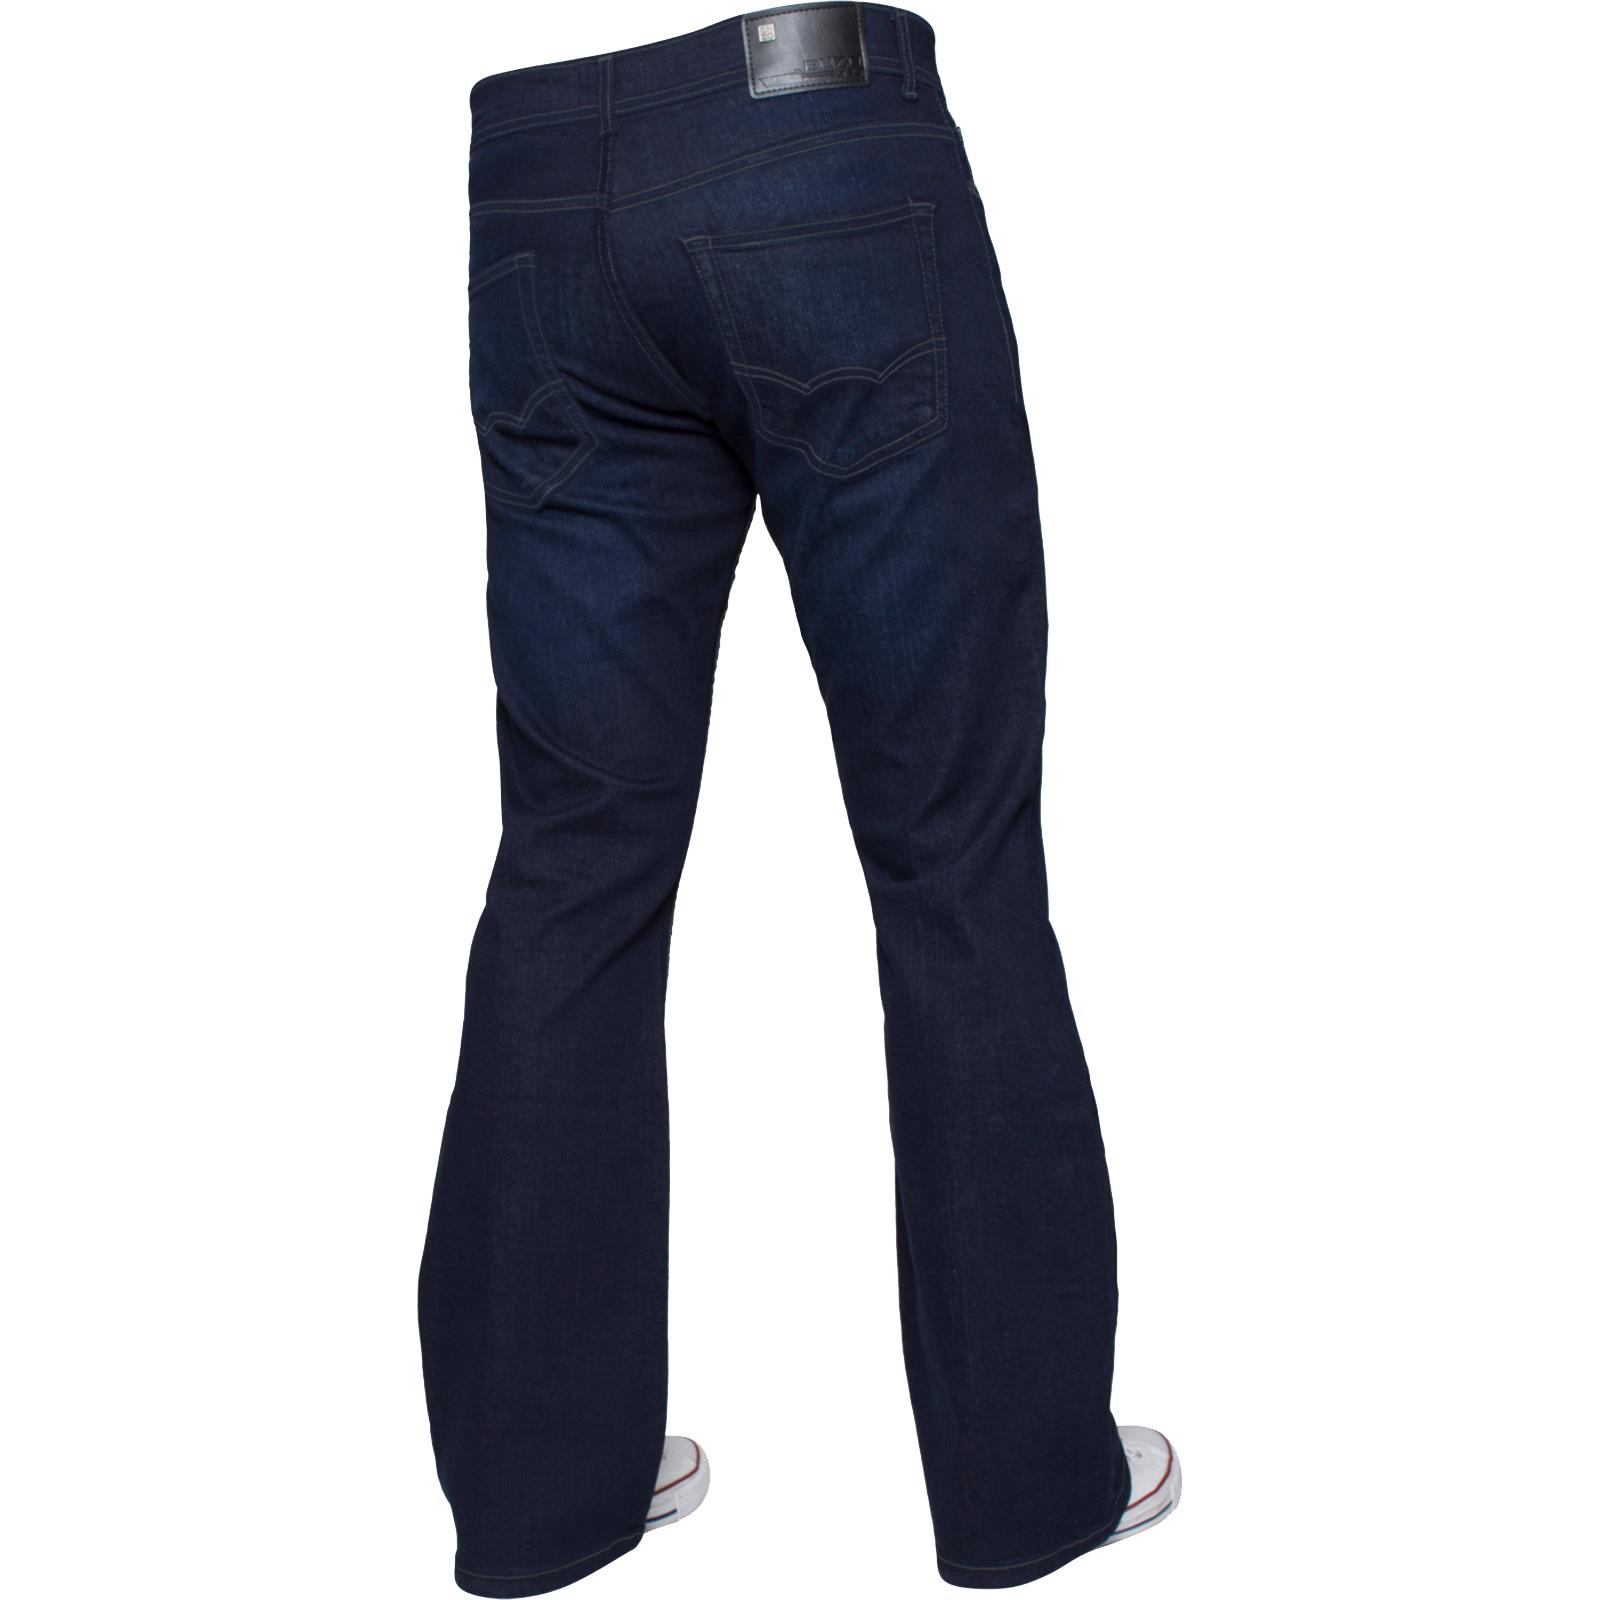 Enzo-Designer-Mens-Bootcut-Flared-Jeans-Stretch-Wide-Leg-Denim-Pants-All-Sizes thumbnail 16